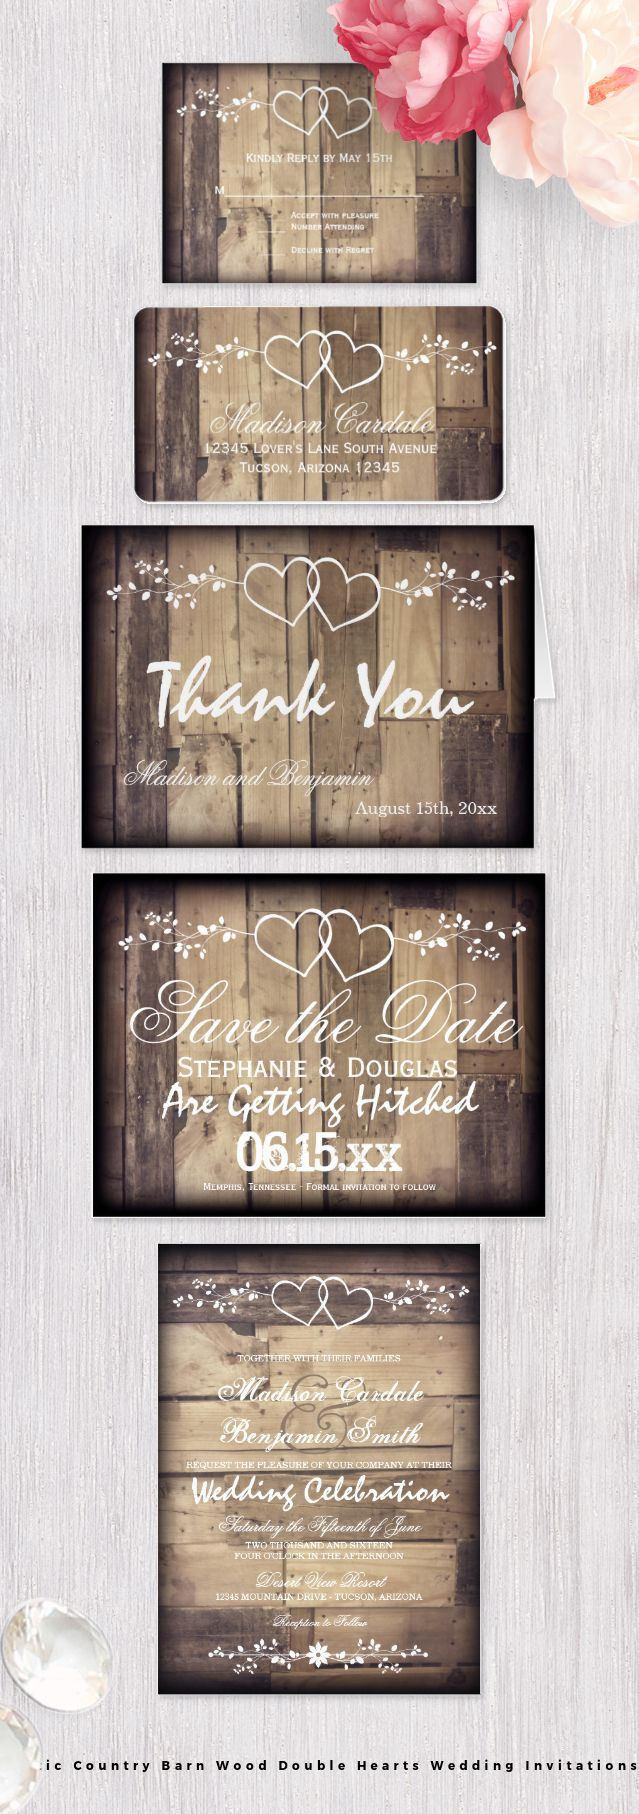 diy rustic wedding invitations burlap%0A Rustic wedding invitations and sets or collections  chalkboard  burlap  and lace  mason jars and more    Rustic Wedding Invitations   Pinterest    Lace